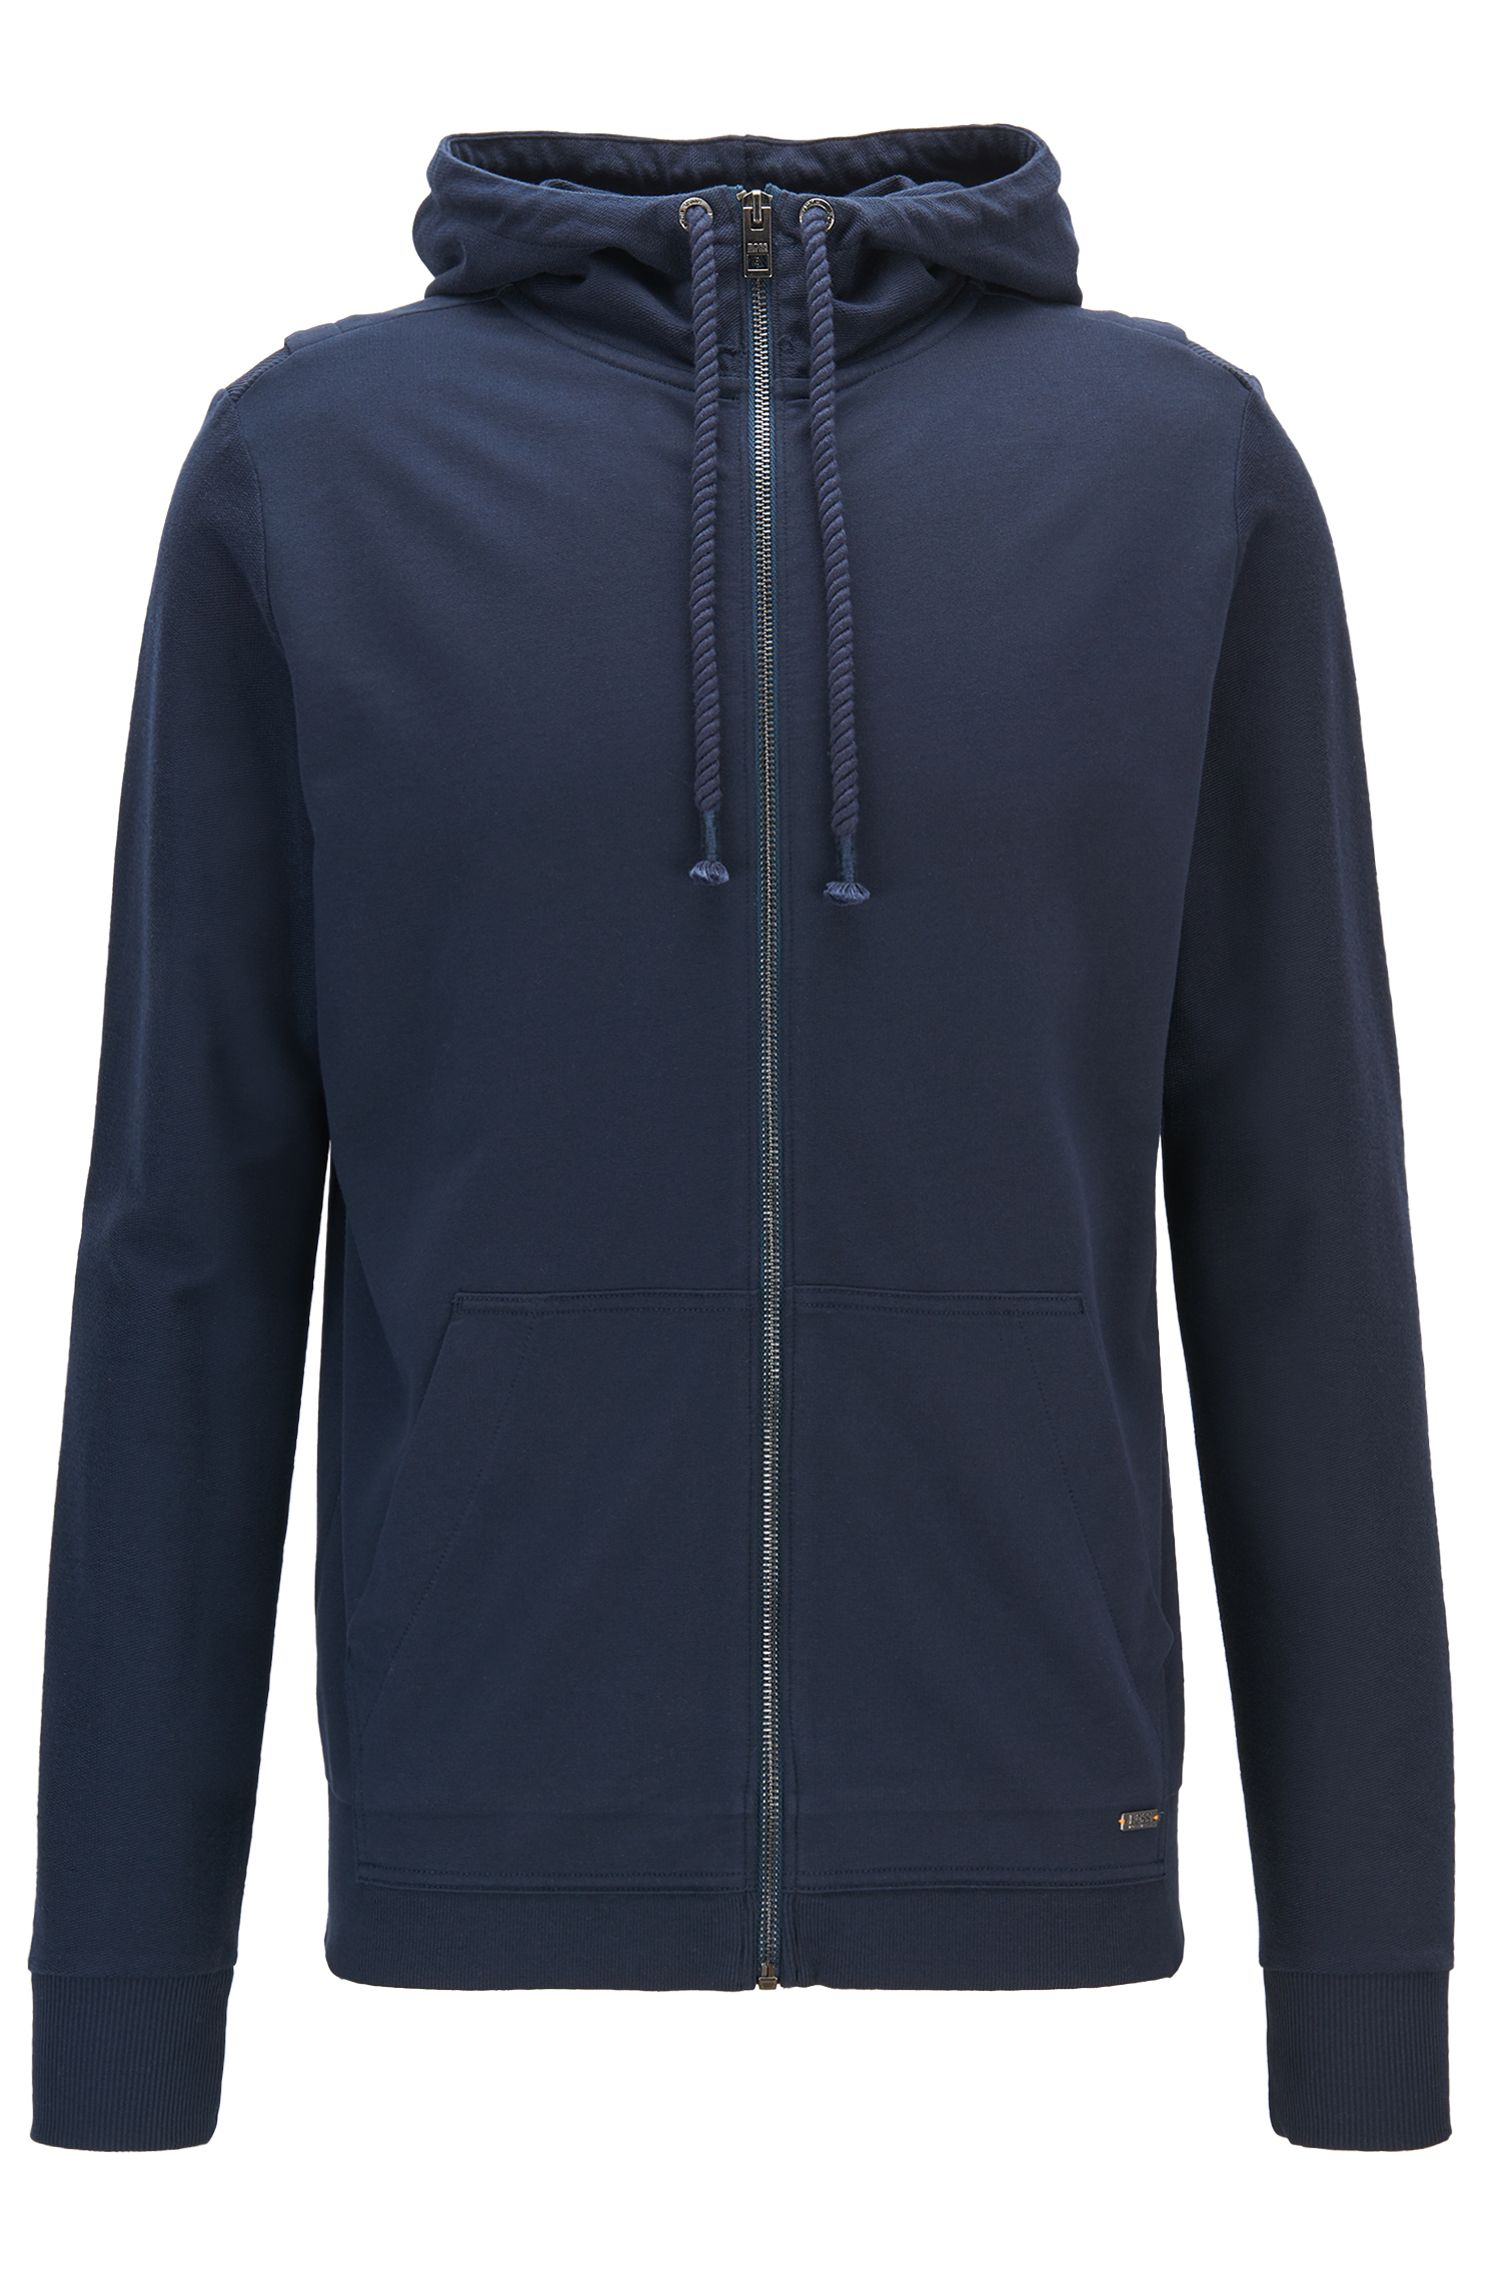 Hooded French-terry jacket with contrast panelling